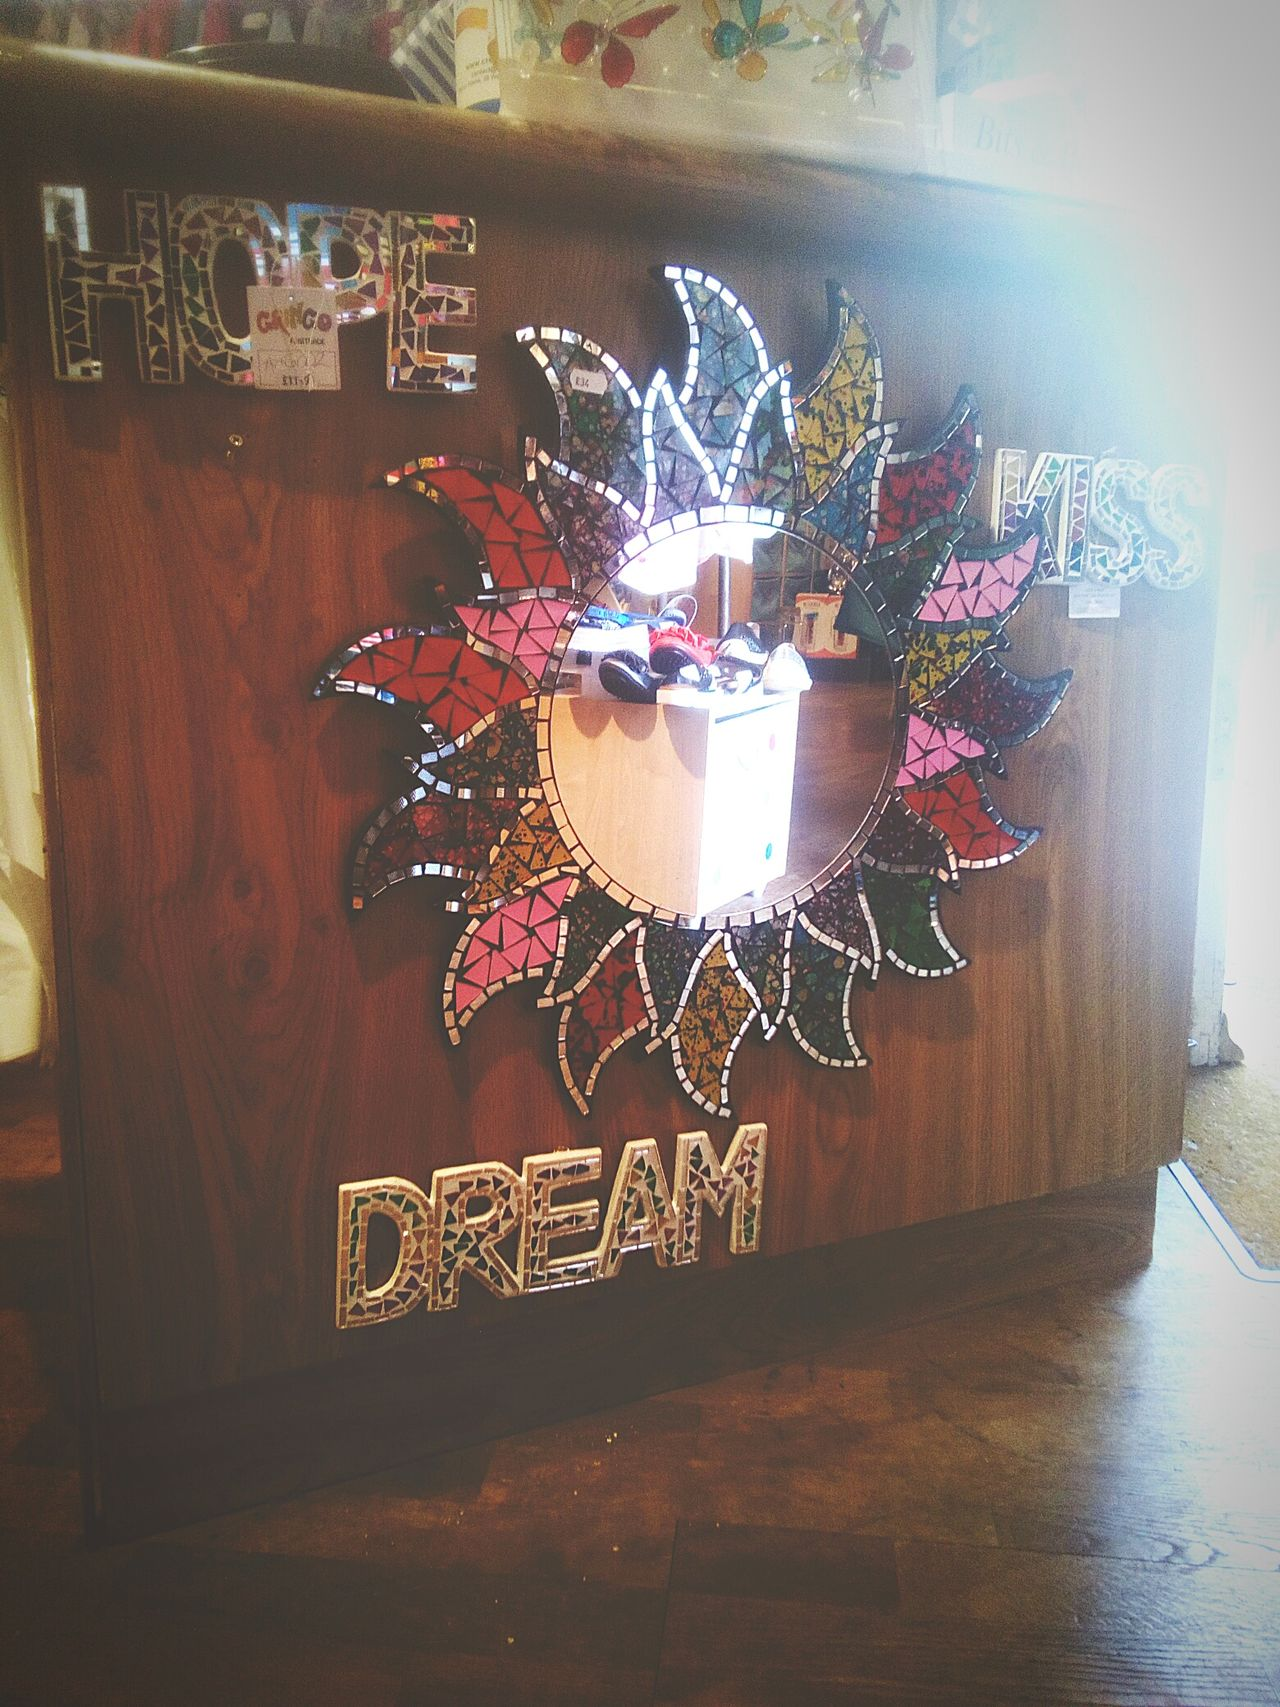 I just redecorated my work place! No People Indoors  Day Close-up Sun Mirror Sparkling Colours Kiss Dream Hope Decoration Shop Retail  Gift Job Great Atmosphere Great Gift Glitter Woden Space